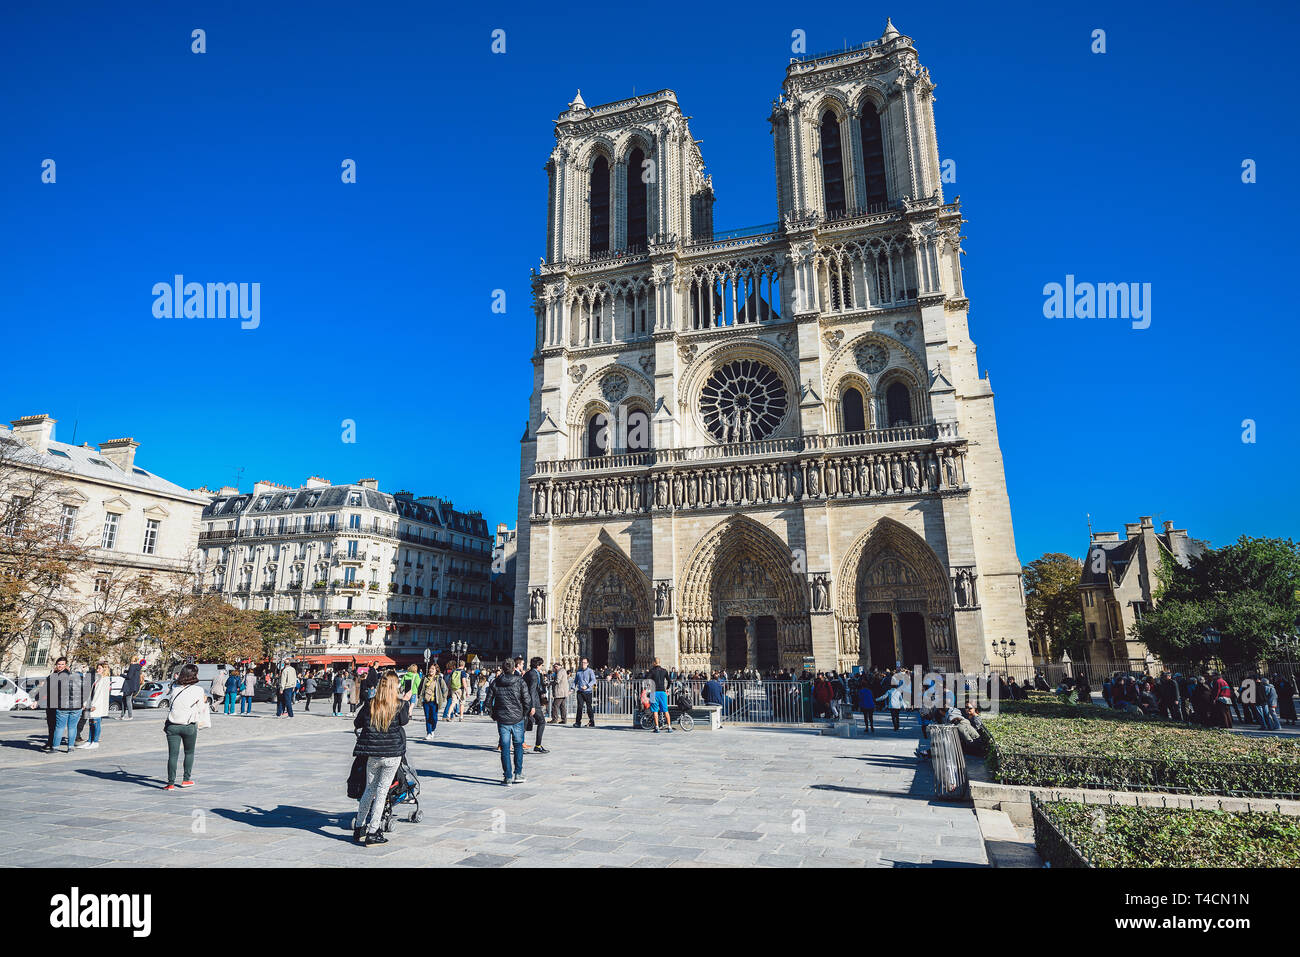 PARIS, FRANCE - OCTOBER 05, 2016: Notre Dame Cathedral and tourists visiting on sunny day - Stock Image